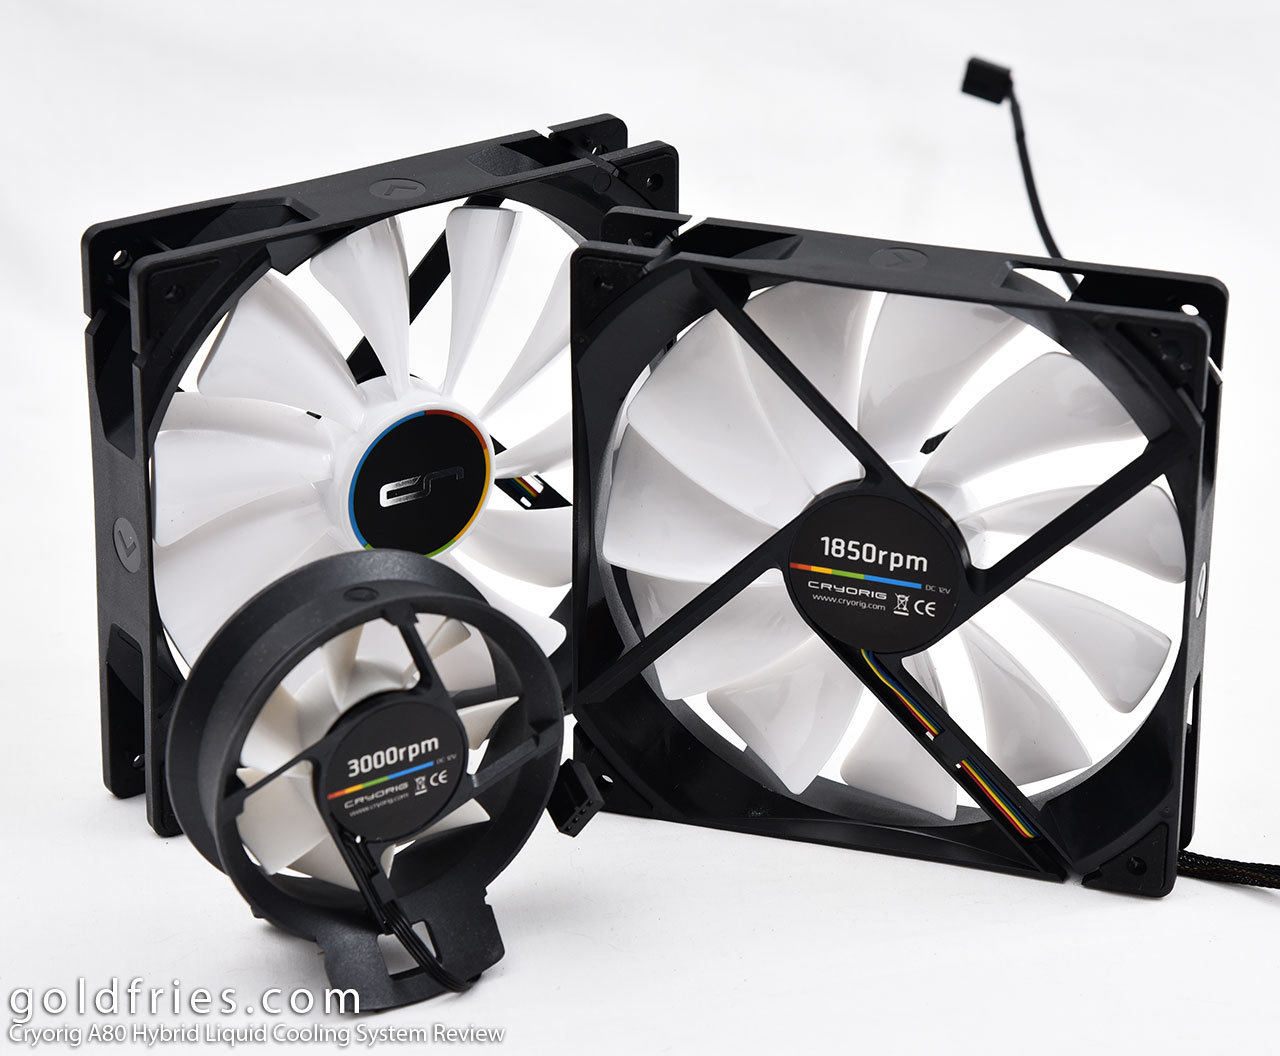 Cryorig A80 Hybrid Liquid Cooling System Review